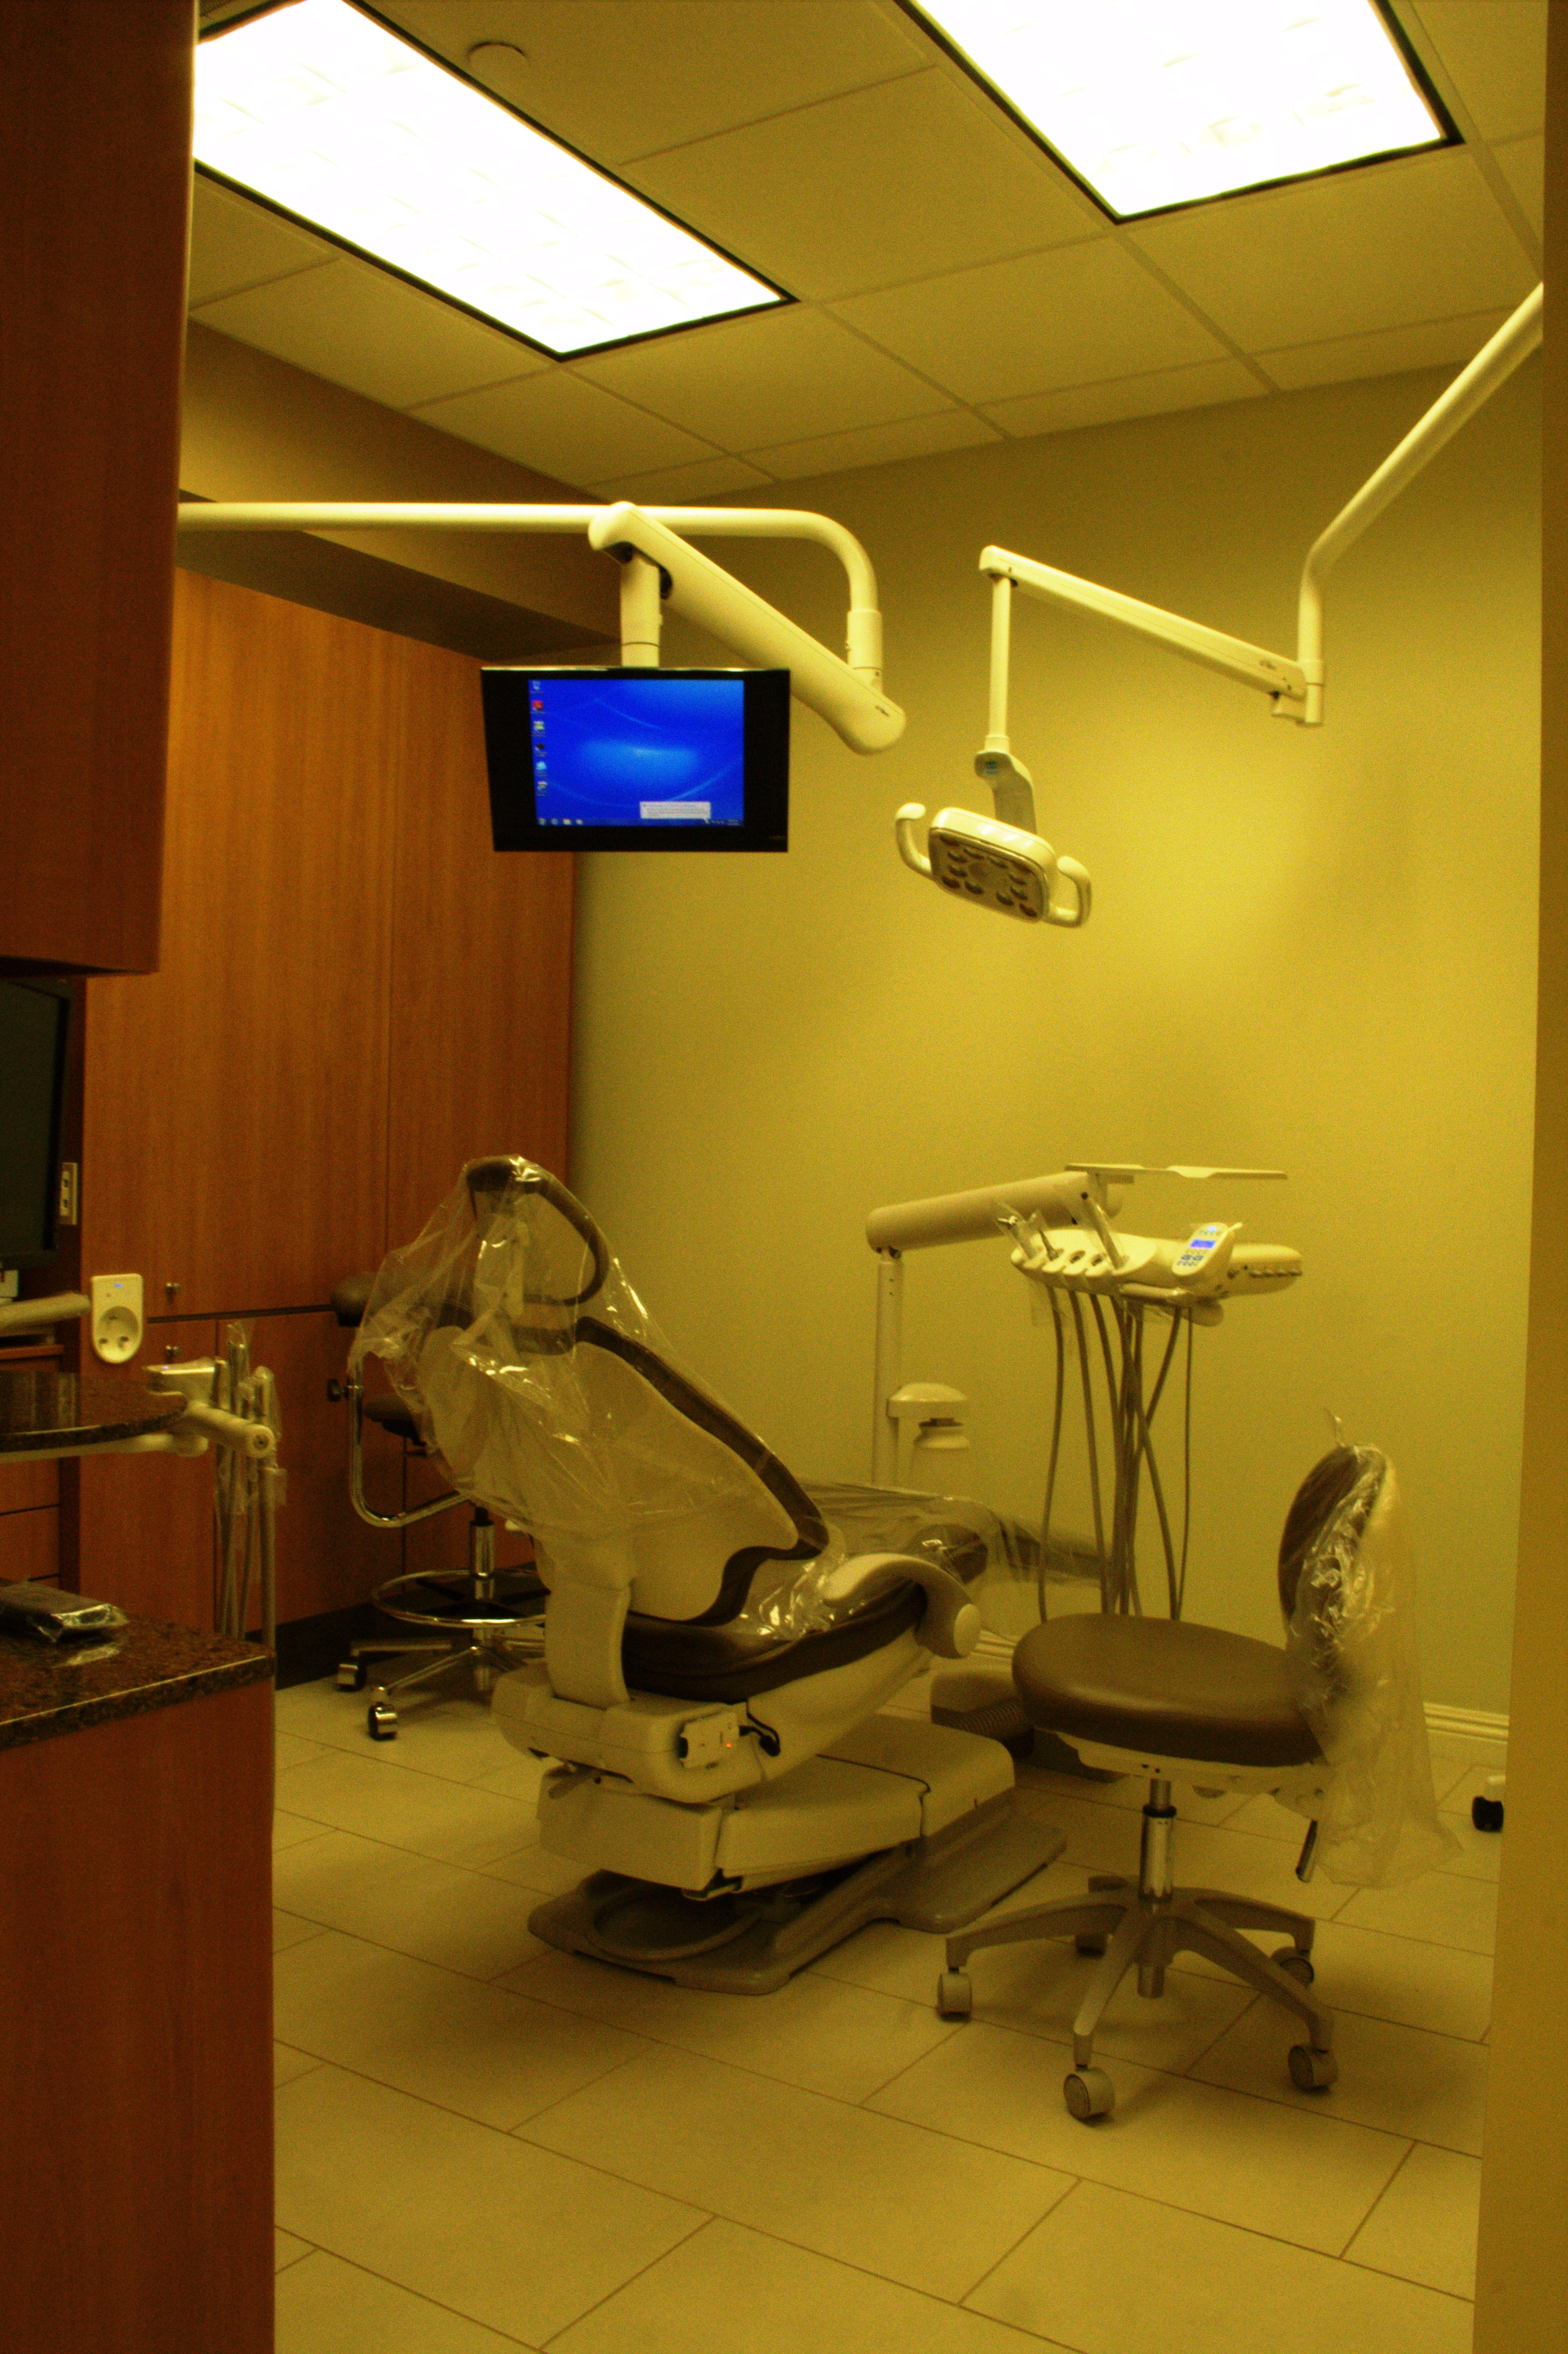 Dental chair and dentistry equipment